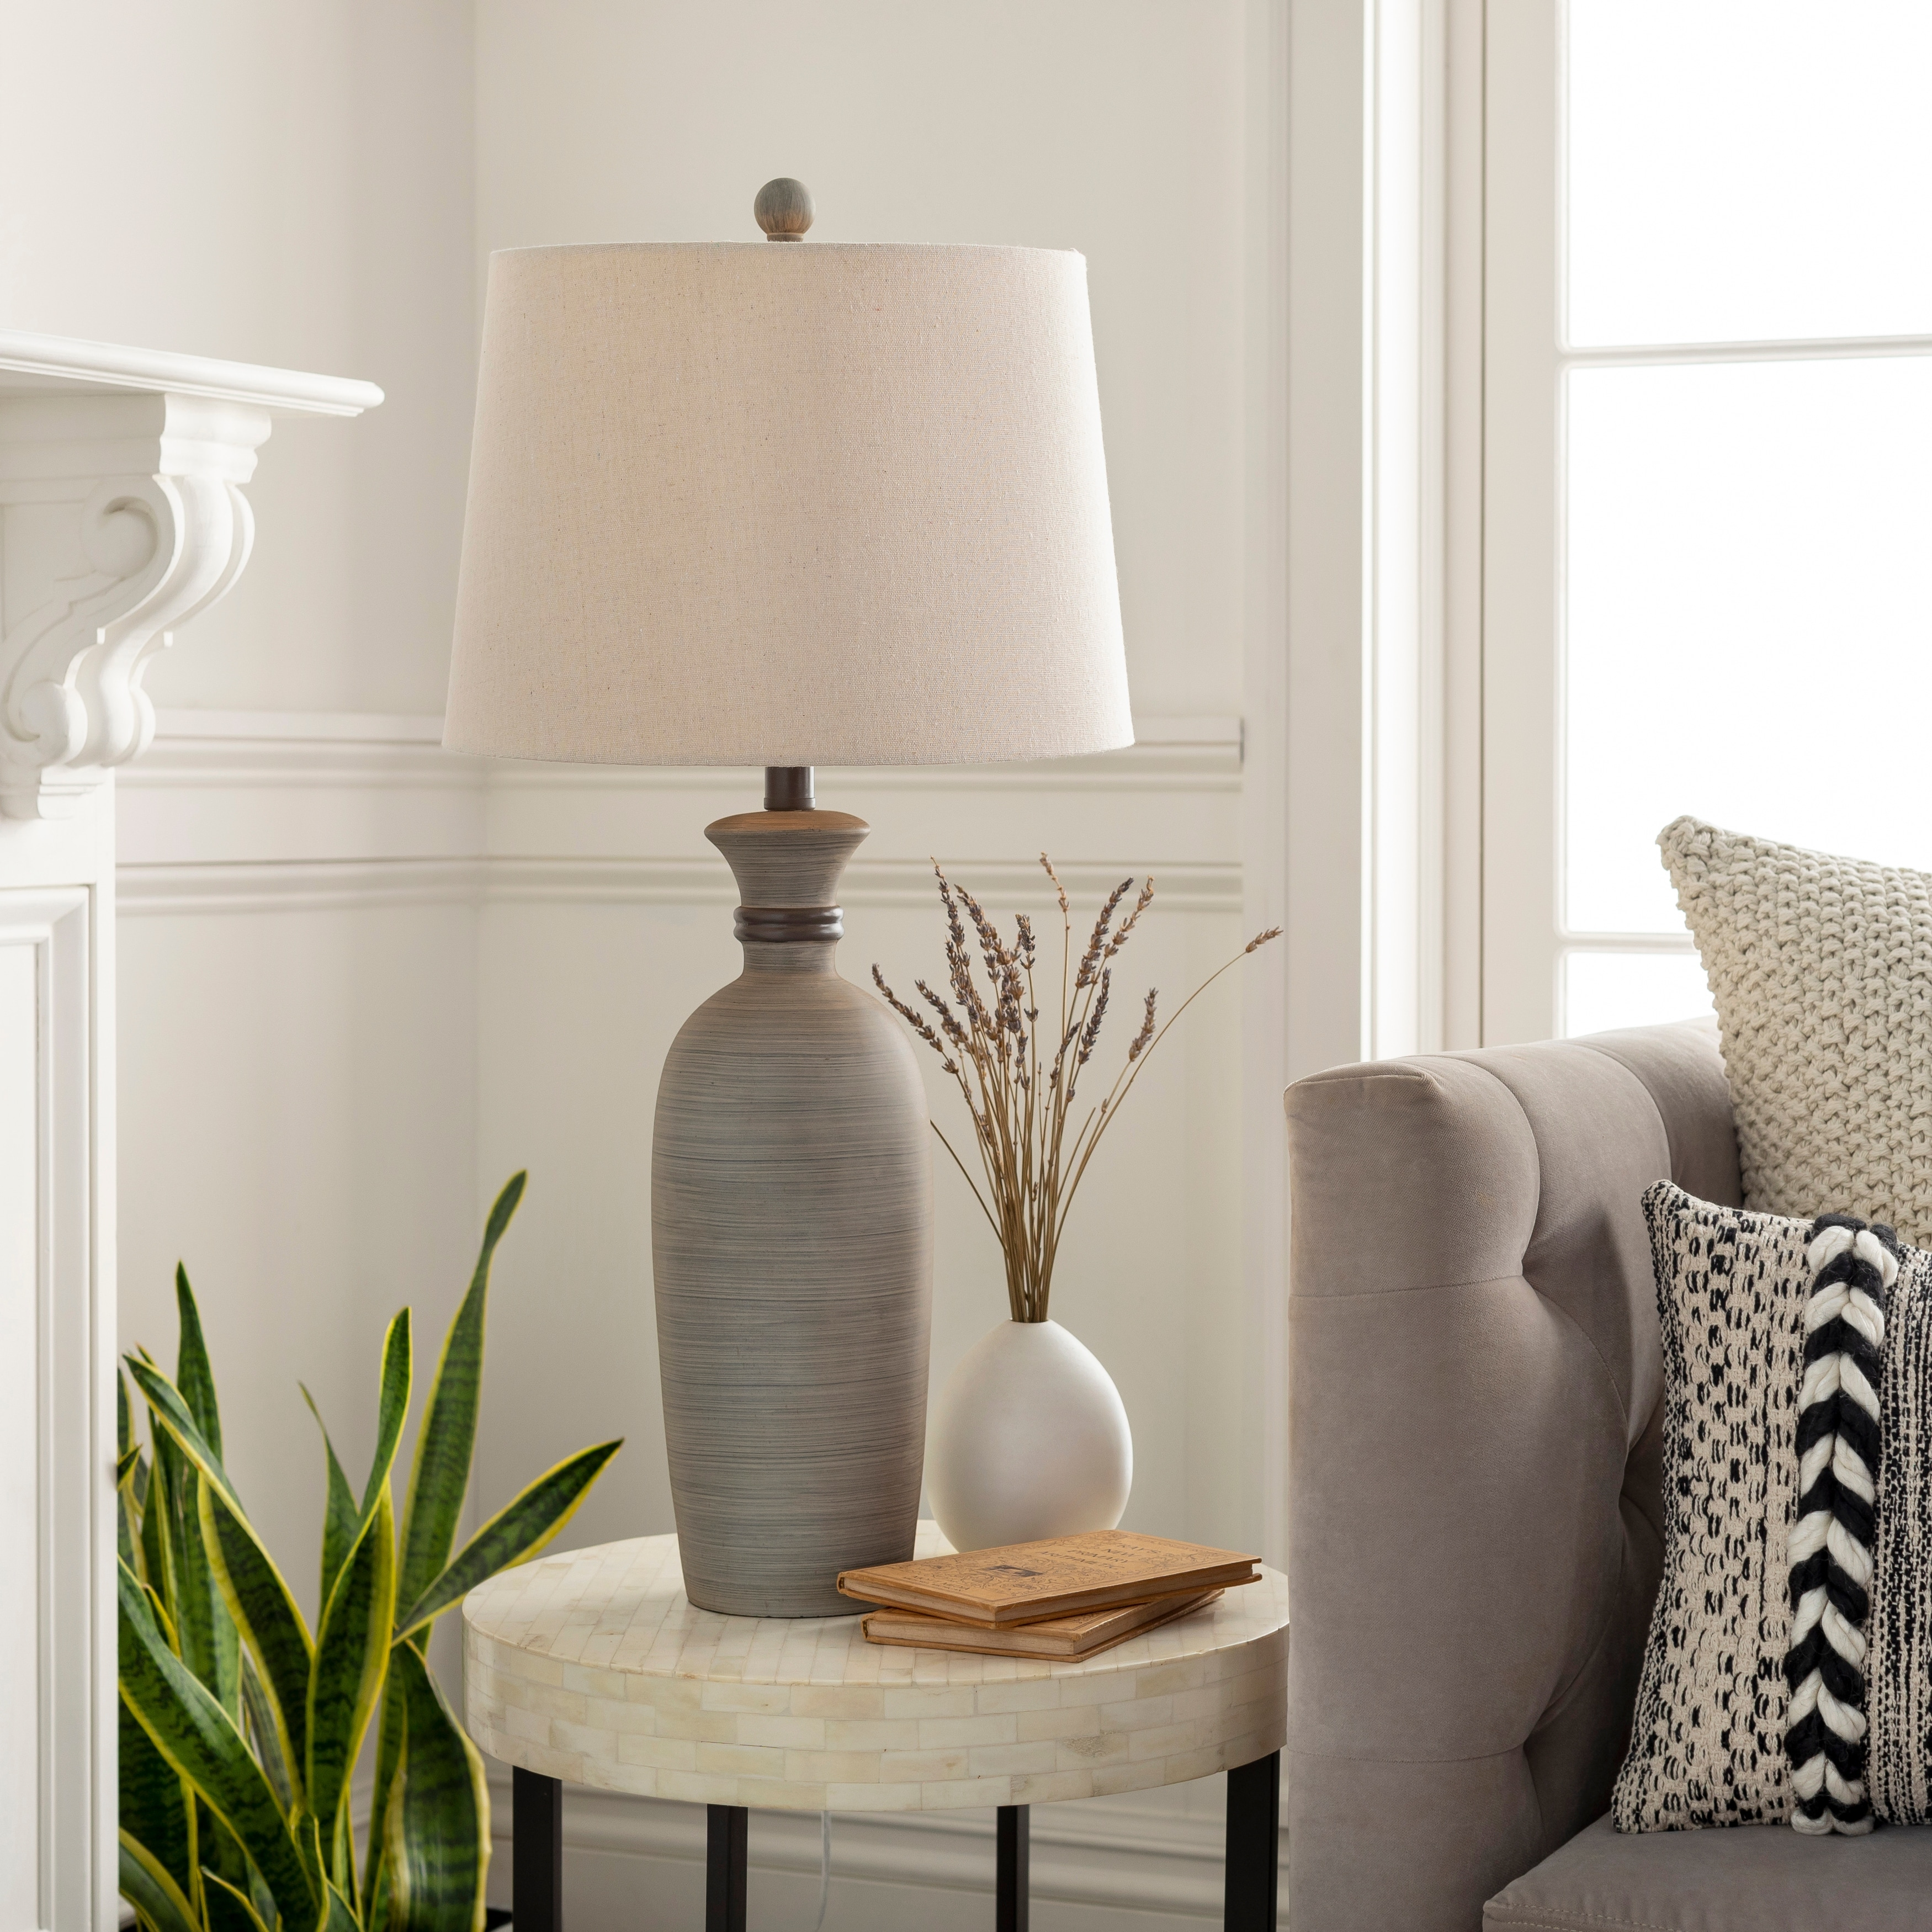 Corrine Classic Grey 28 5 Inch Table Lamp 28 5 H X 14 W X 14 D On Sale Overstock 31431659